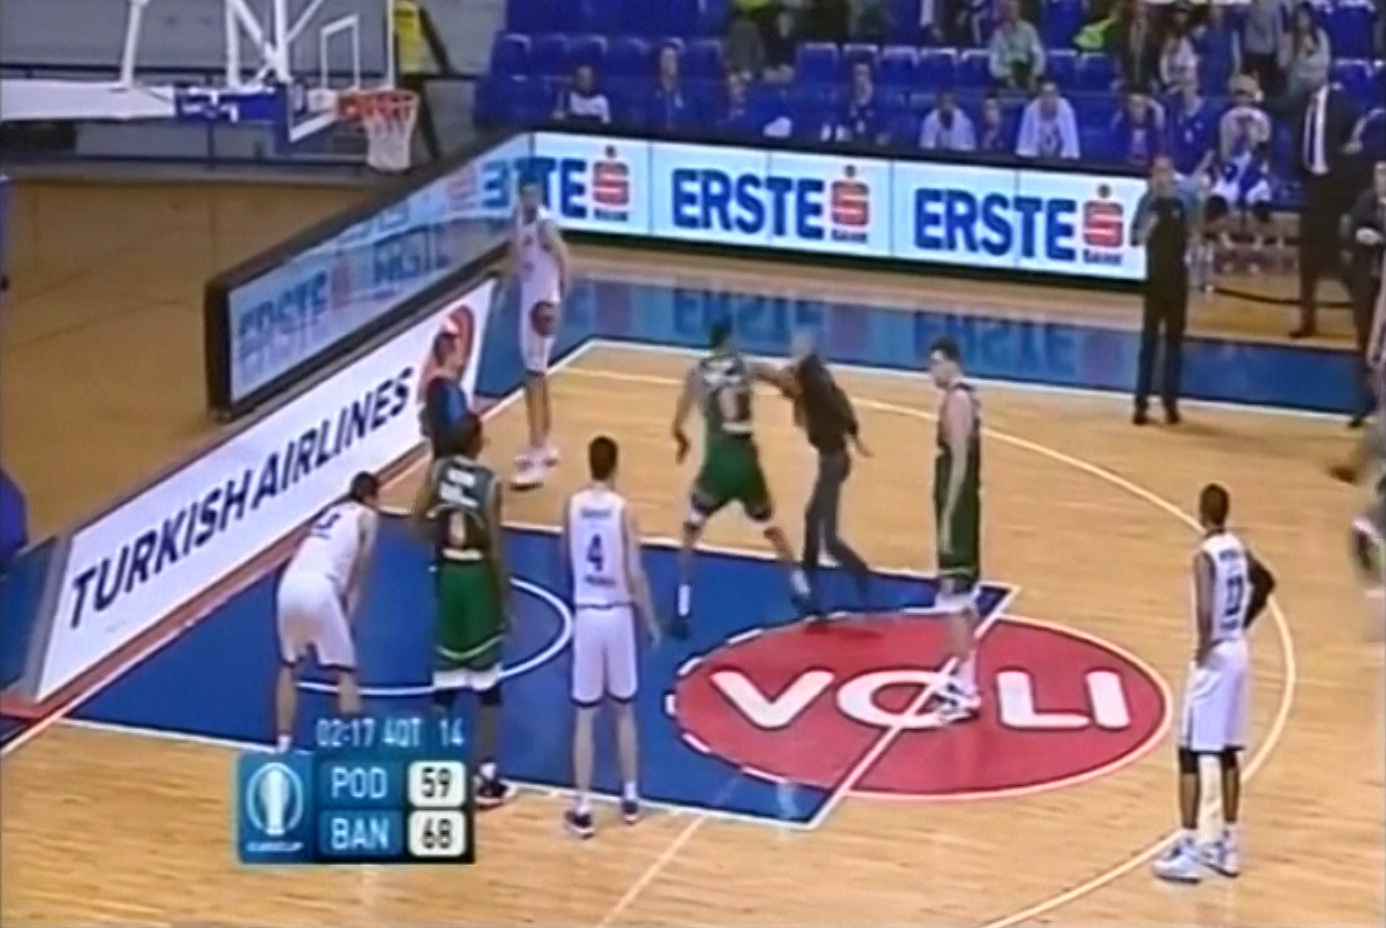 Basketball player punches invading fan during Eurocup game